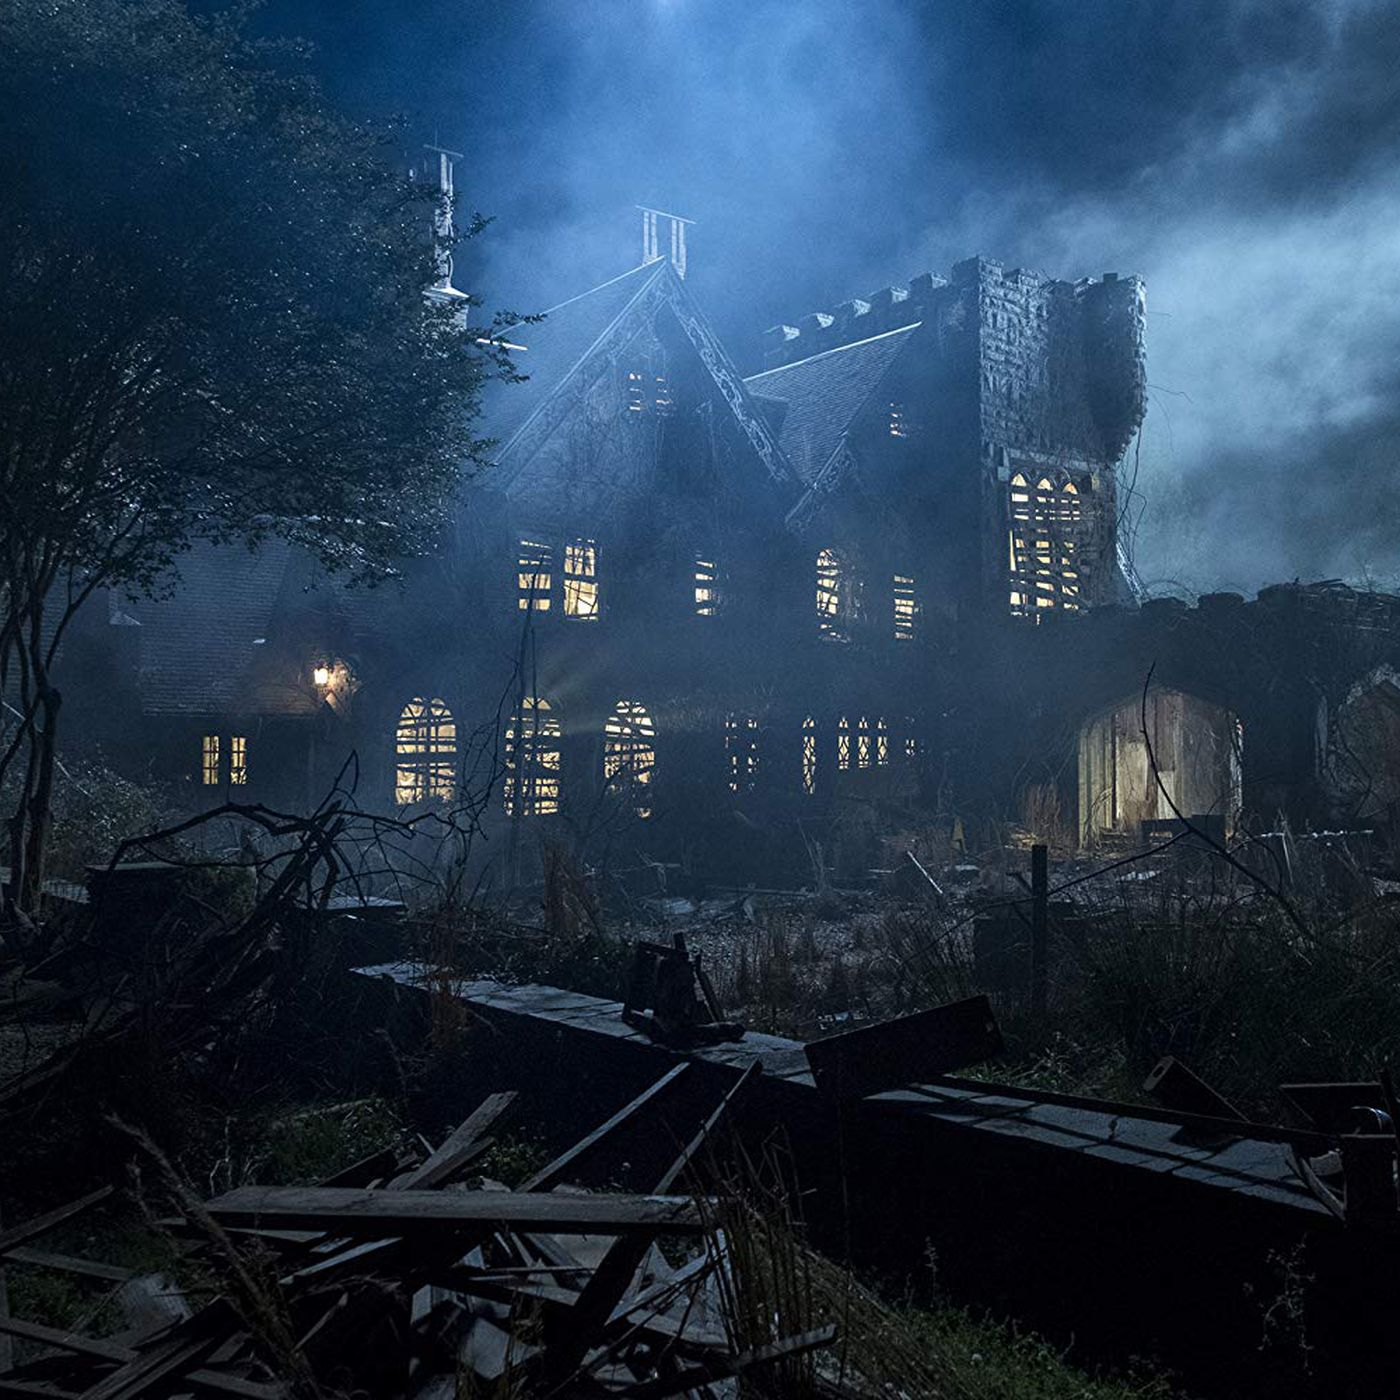 Netflix S The Haunting Of Hill House Is A Slow Burn Family Nightmare Vox